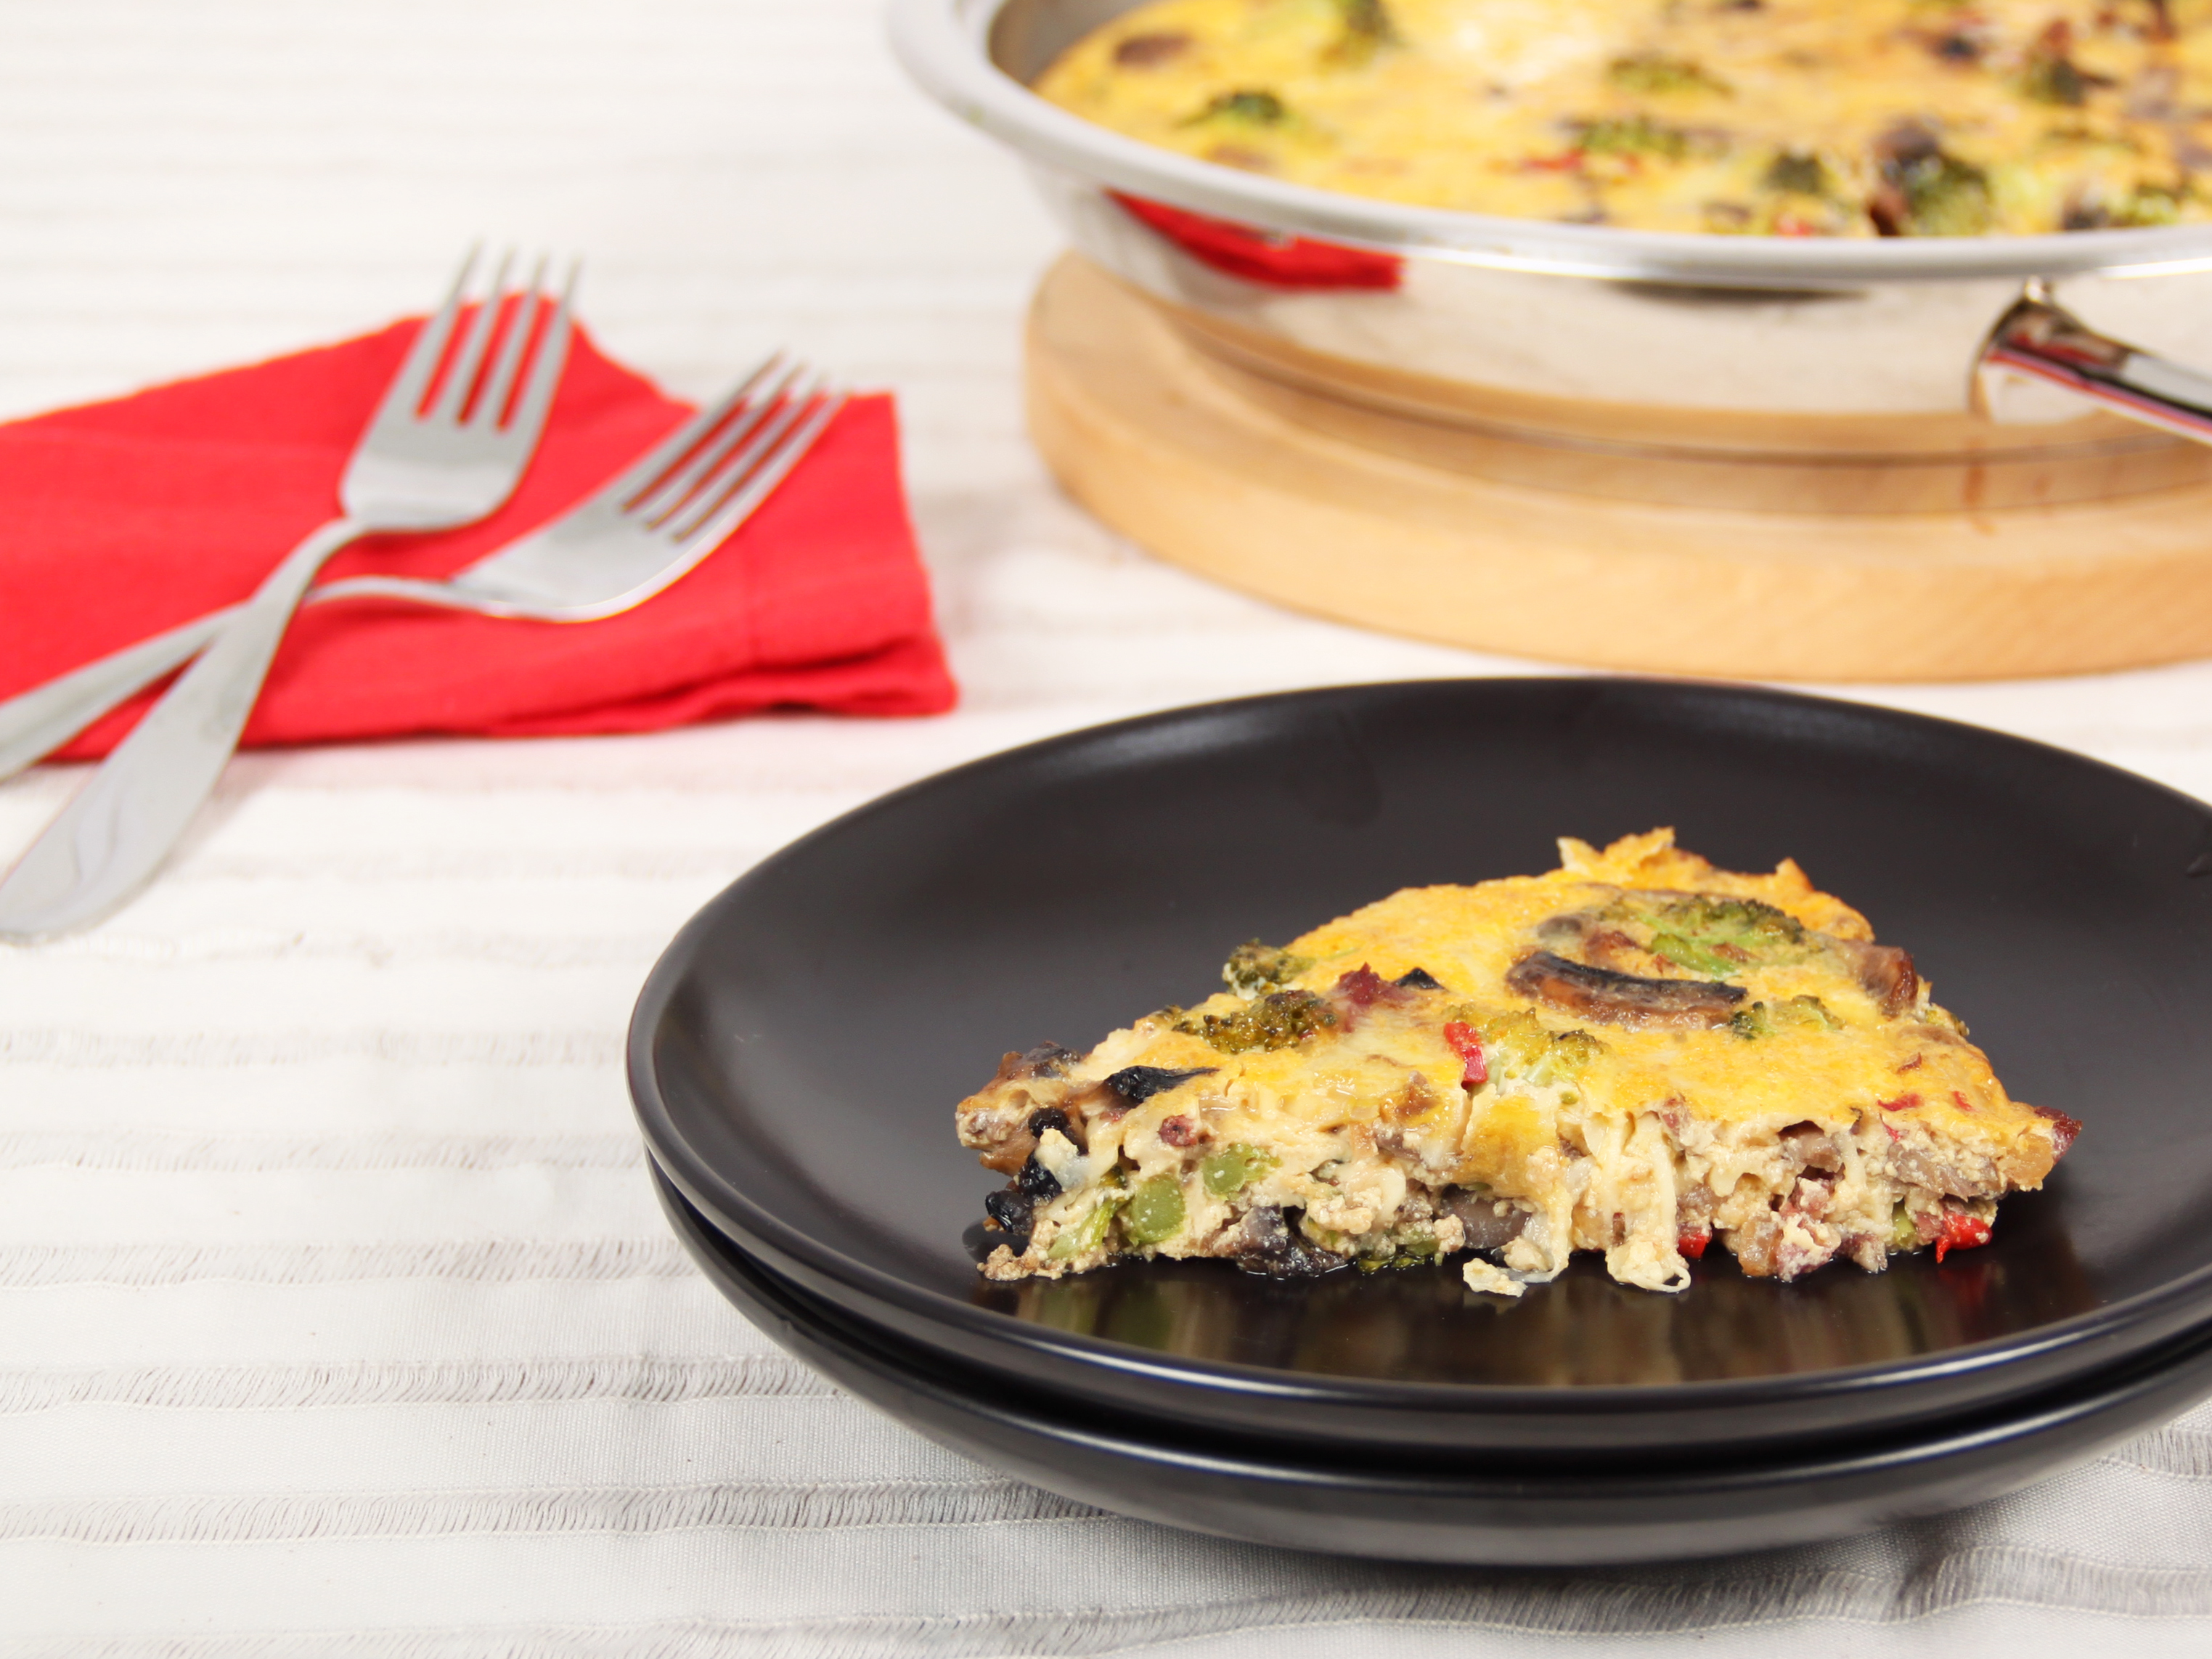 All day frittata prepared in an AMC Chef's Pan